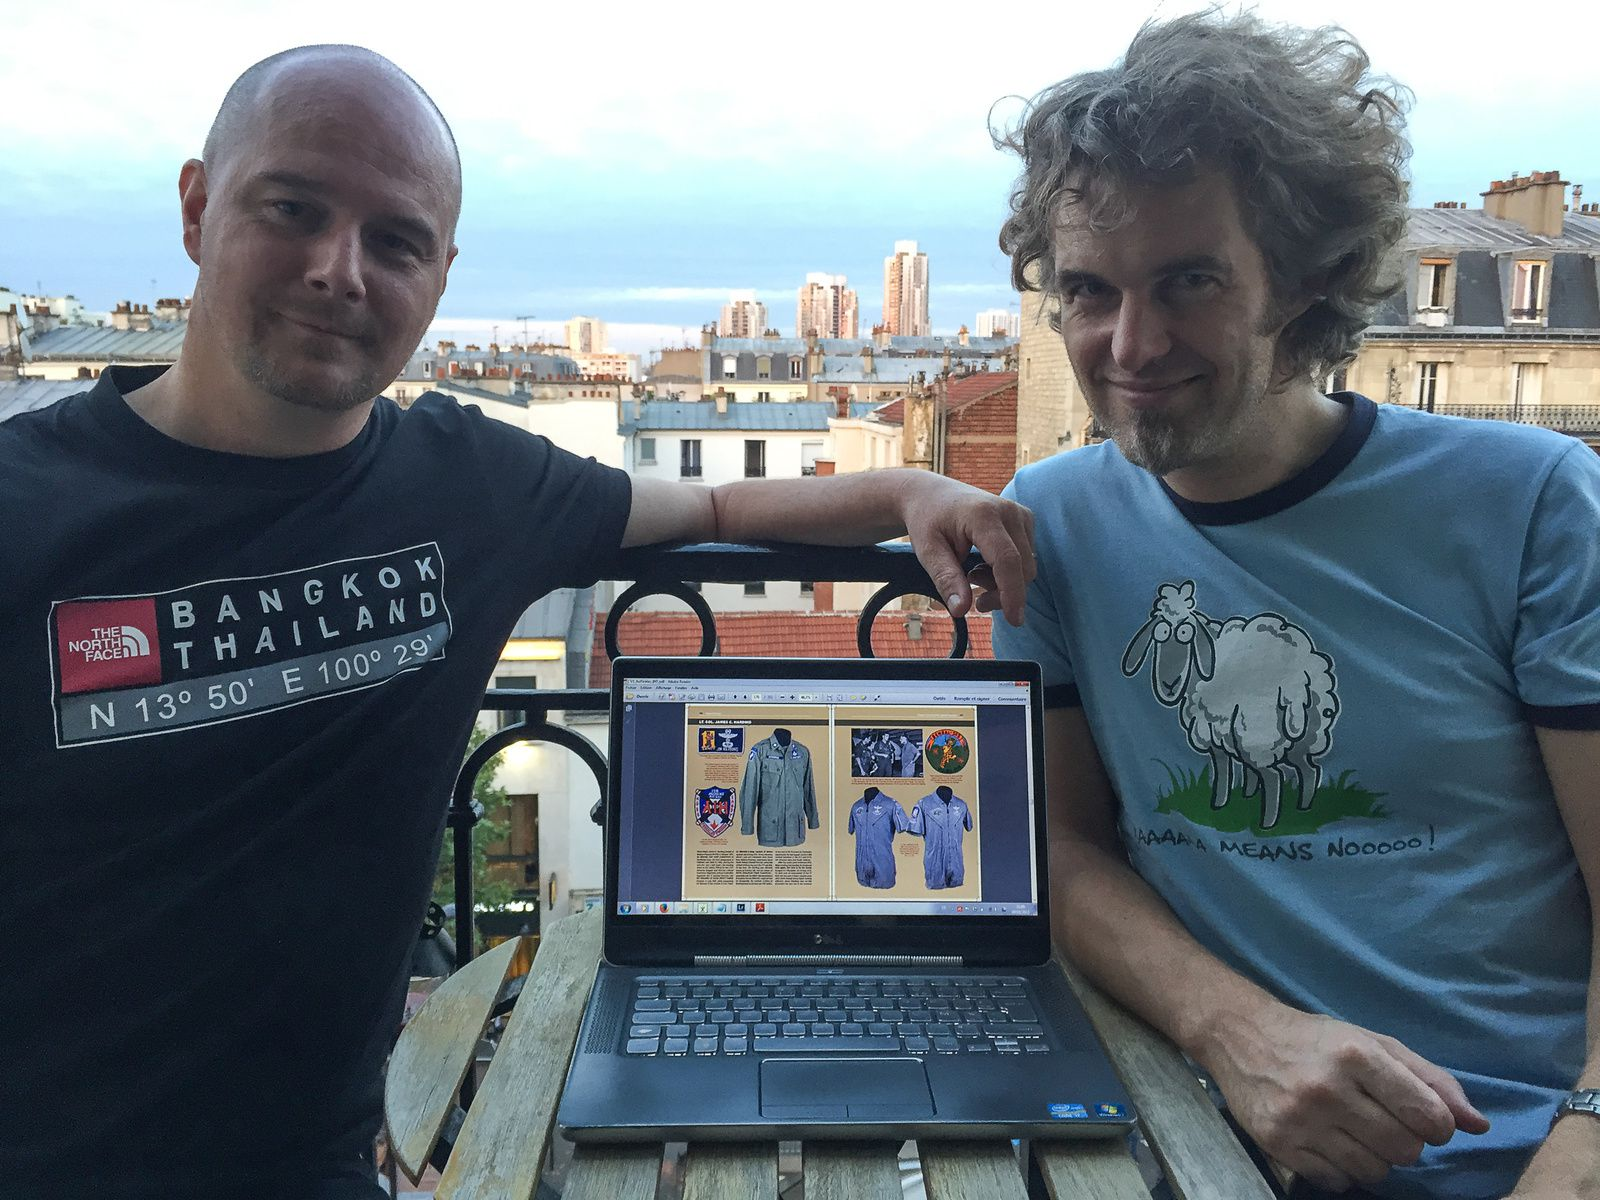 François and Olivier in Paris in August. A tiny part of the 1st SOS section of volume 2 can be seen on the laptop.